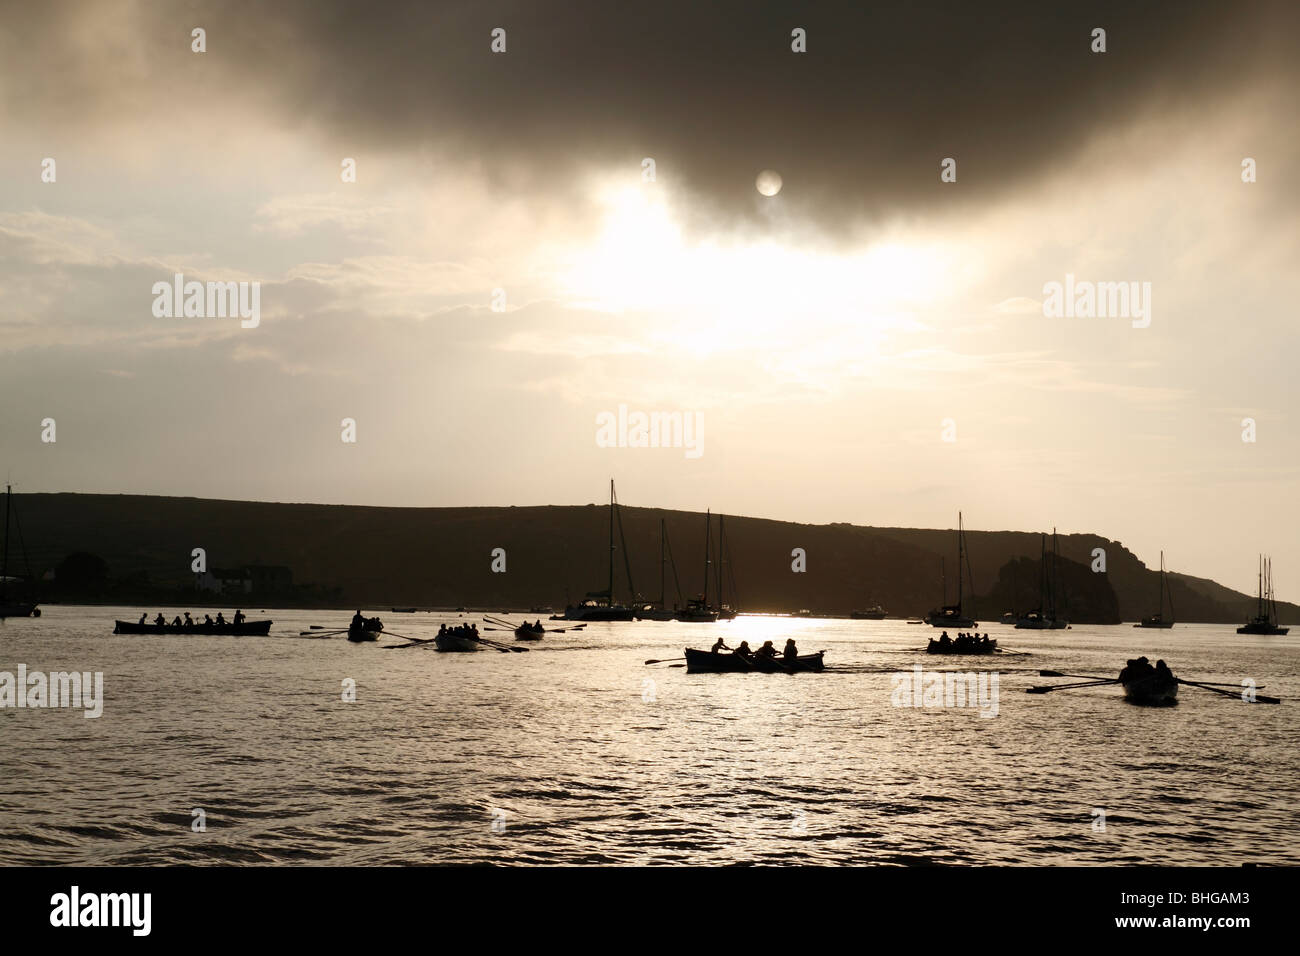 Gig boats at the end of a race in the Isles of Scilly, Cornwall UK. - Stock Image